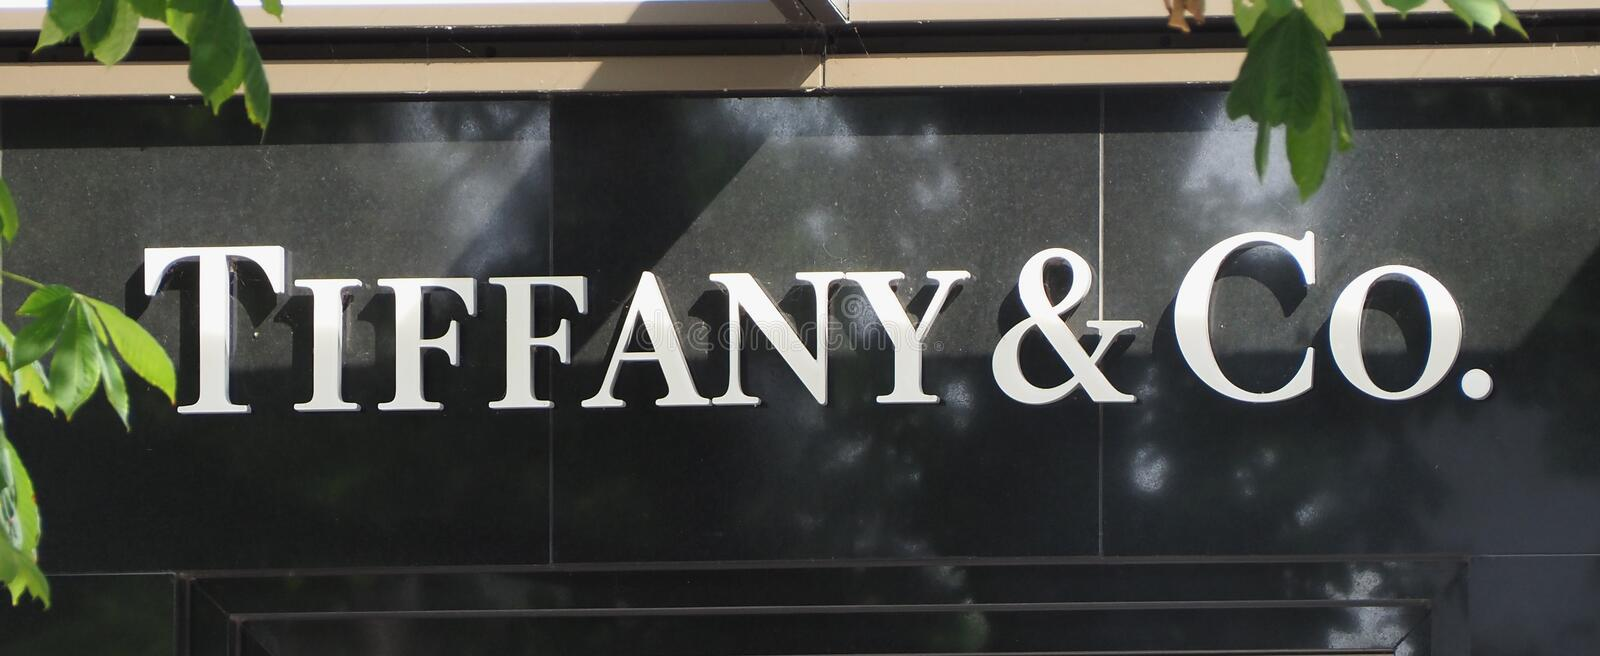 DUeSSELDORF - AUG 2019: Tiffany & Co sign royalty free stock photo